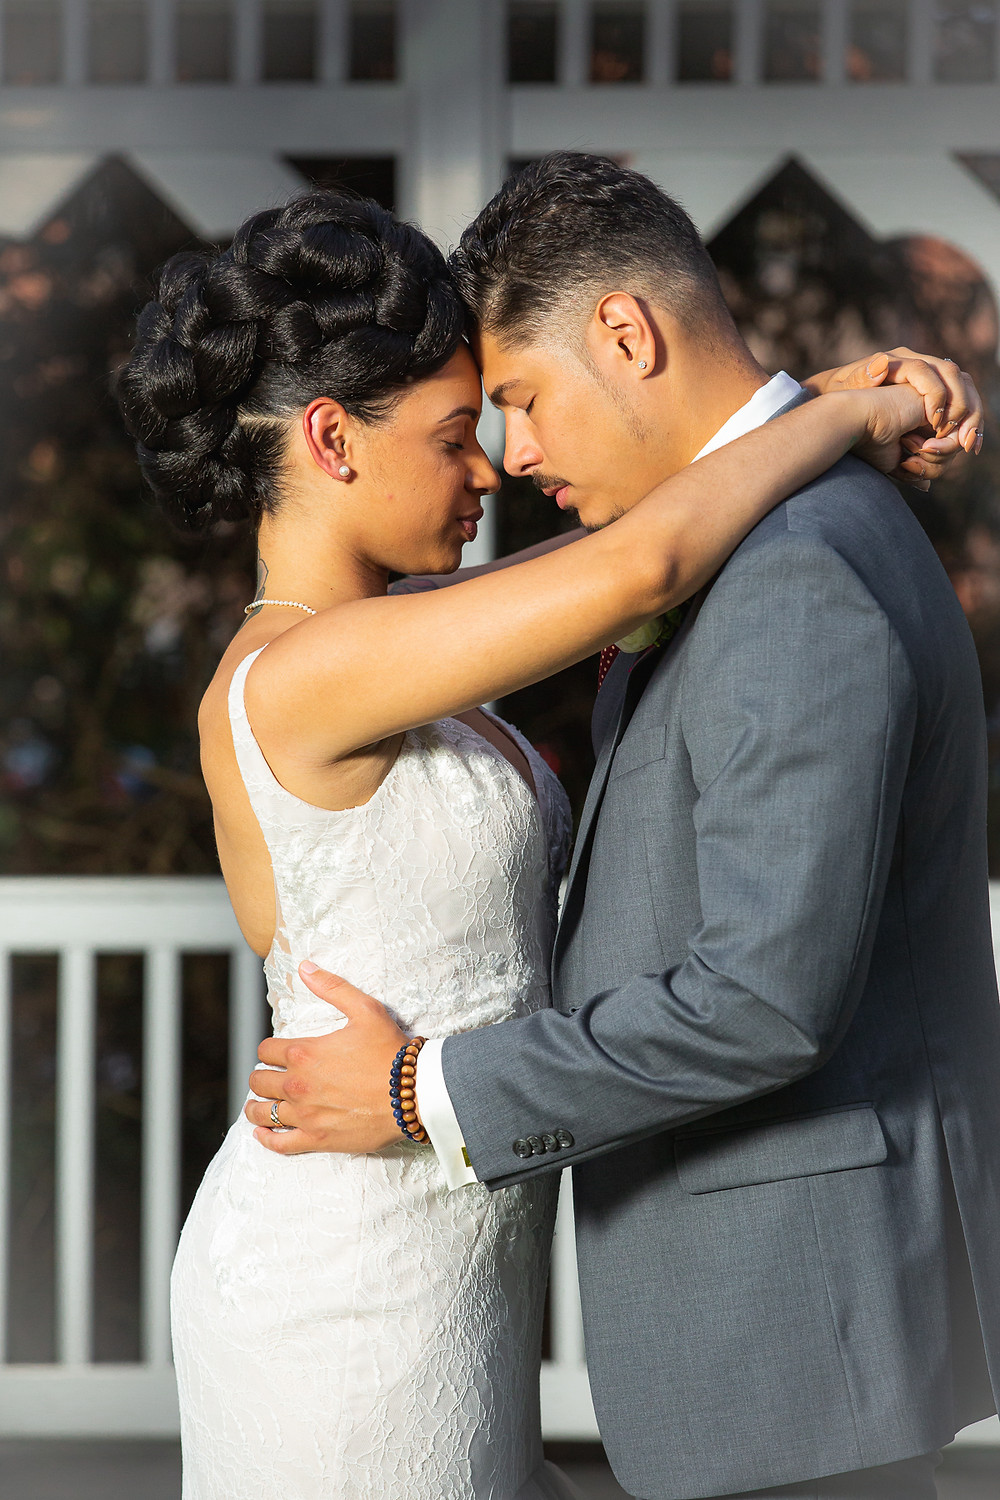 Bride and groom posing for a formal portrait after the wedding ceremony at Martin's Crosswinds in Greenbelt, Maryland.